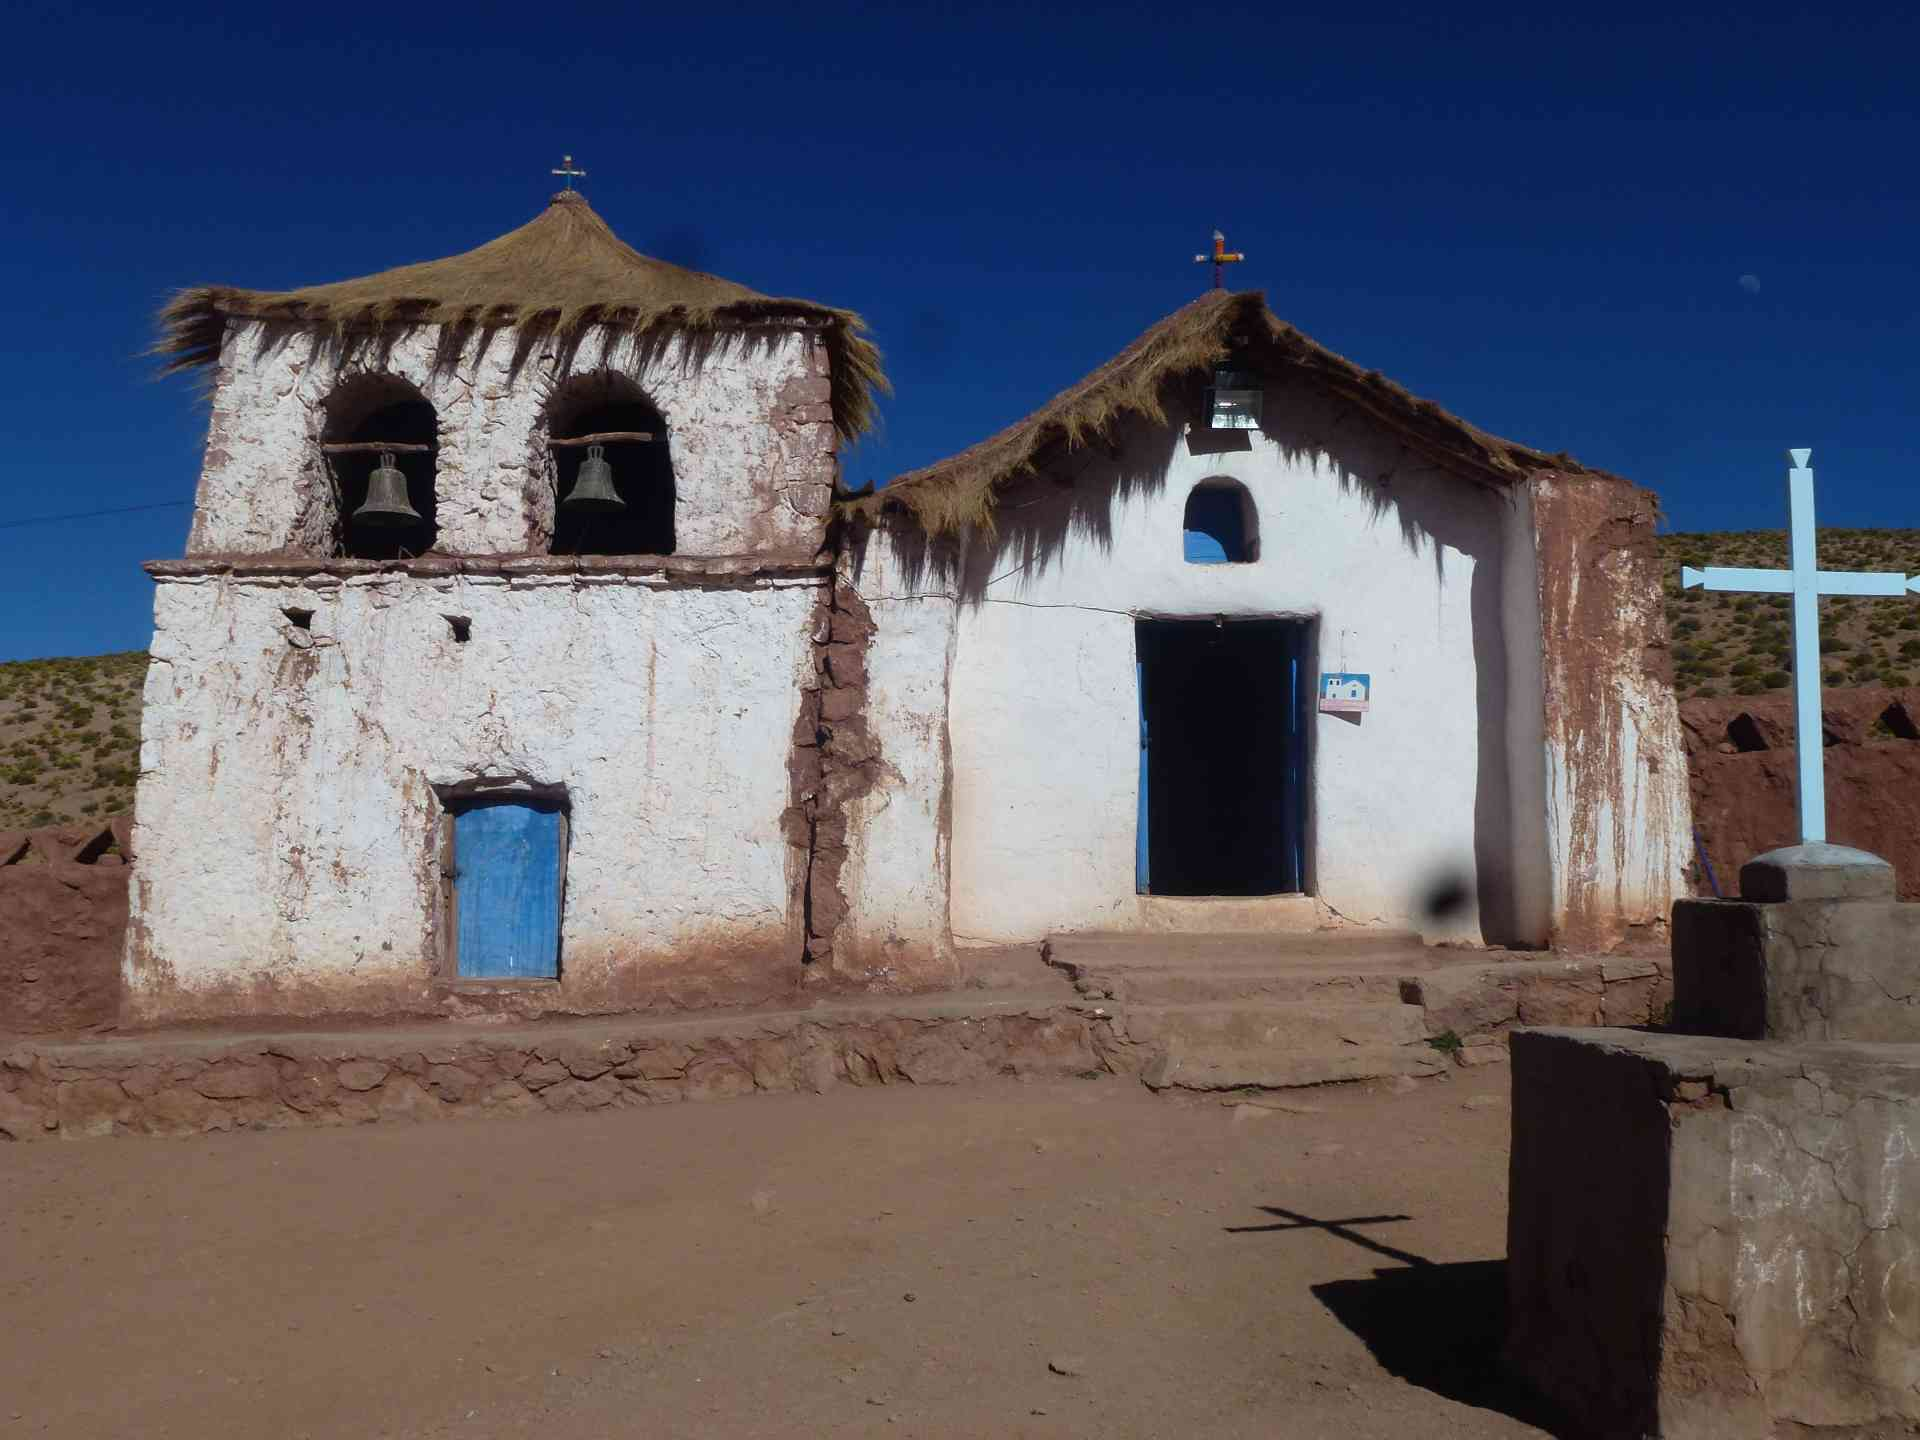 Church of Machuca in the Atacama Desert, Chile by James Atwell